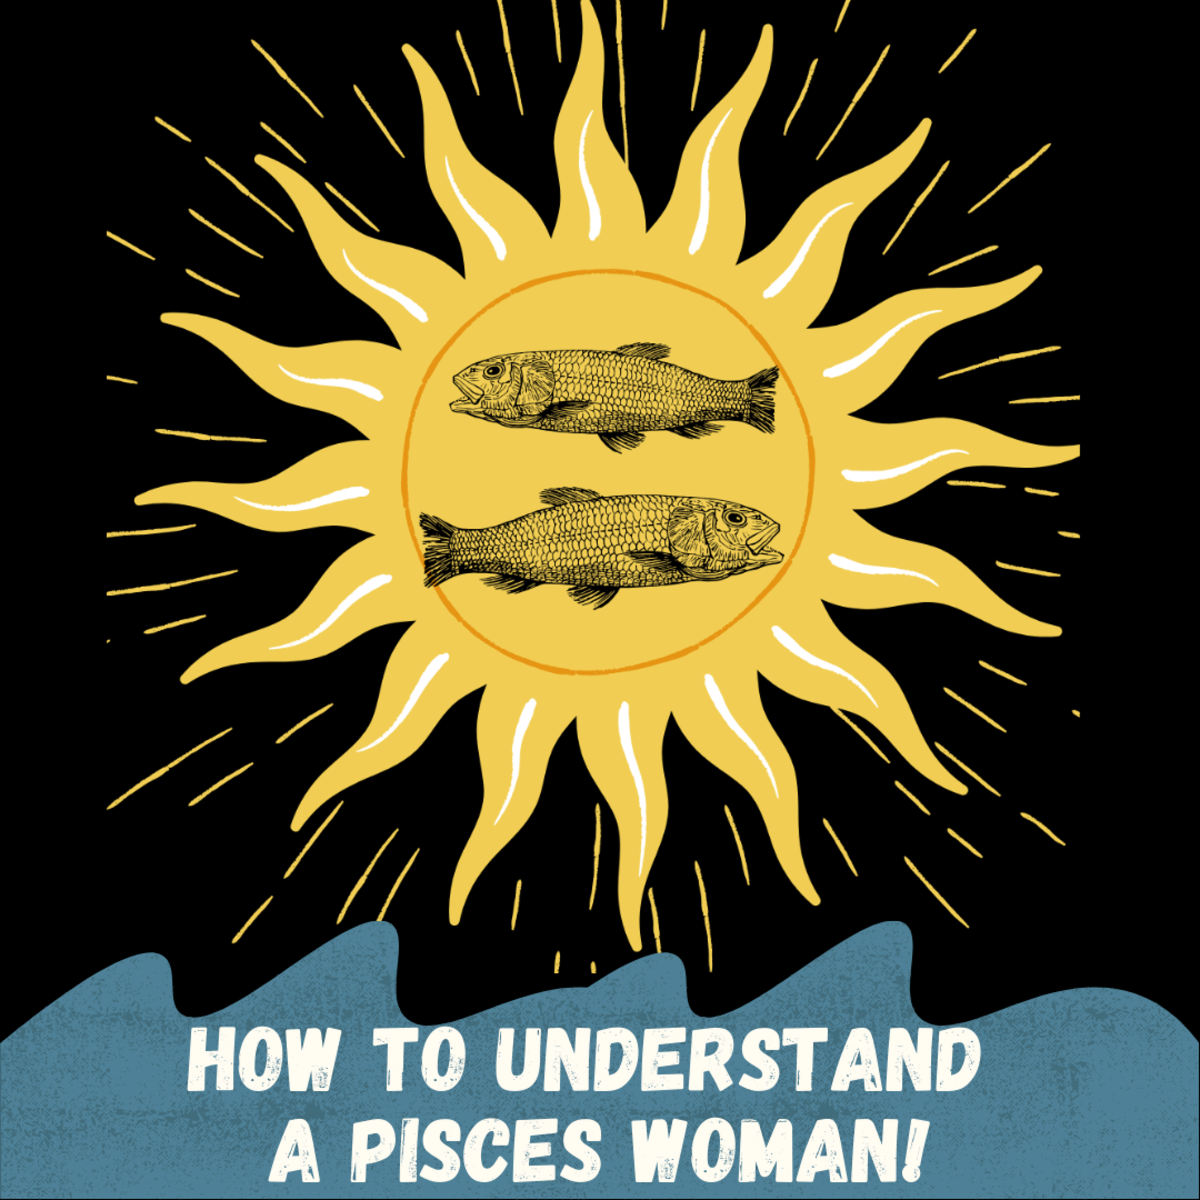 Read on to learn how to understand a Pisces woman!